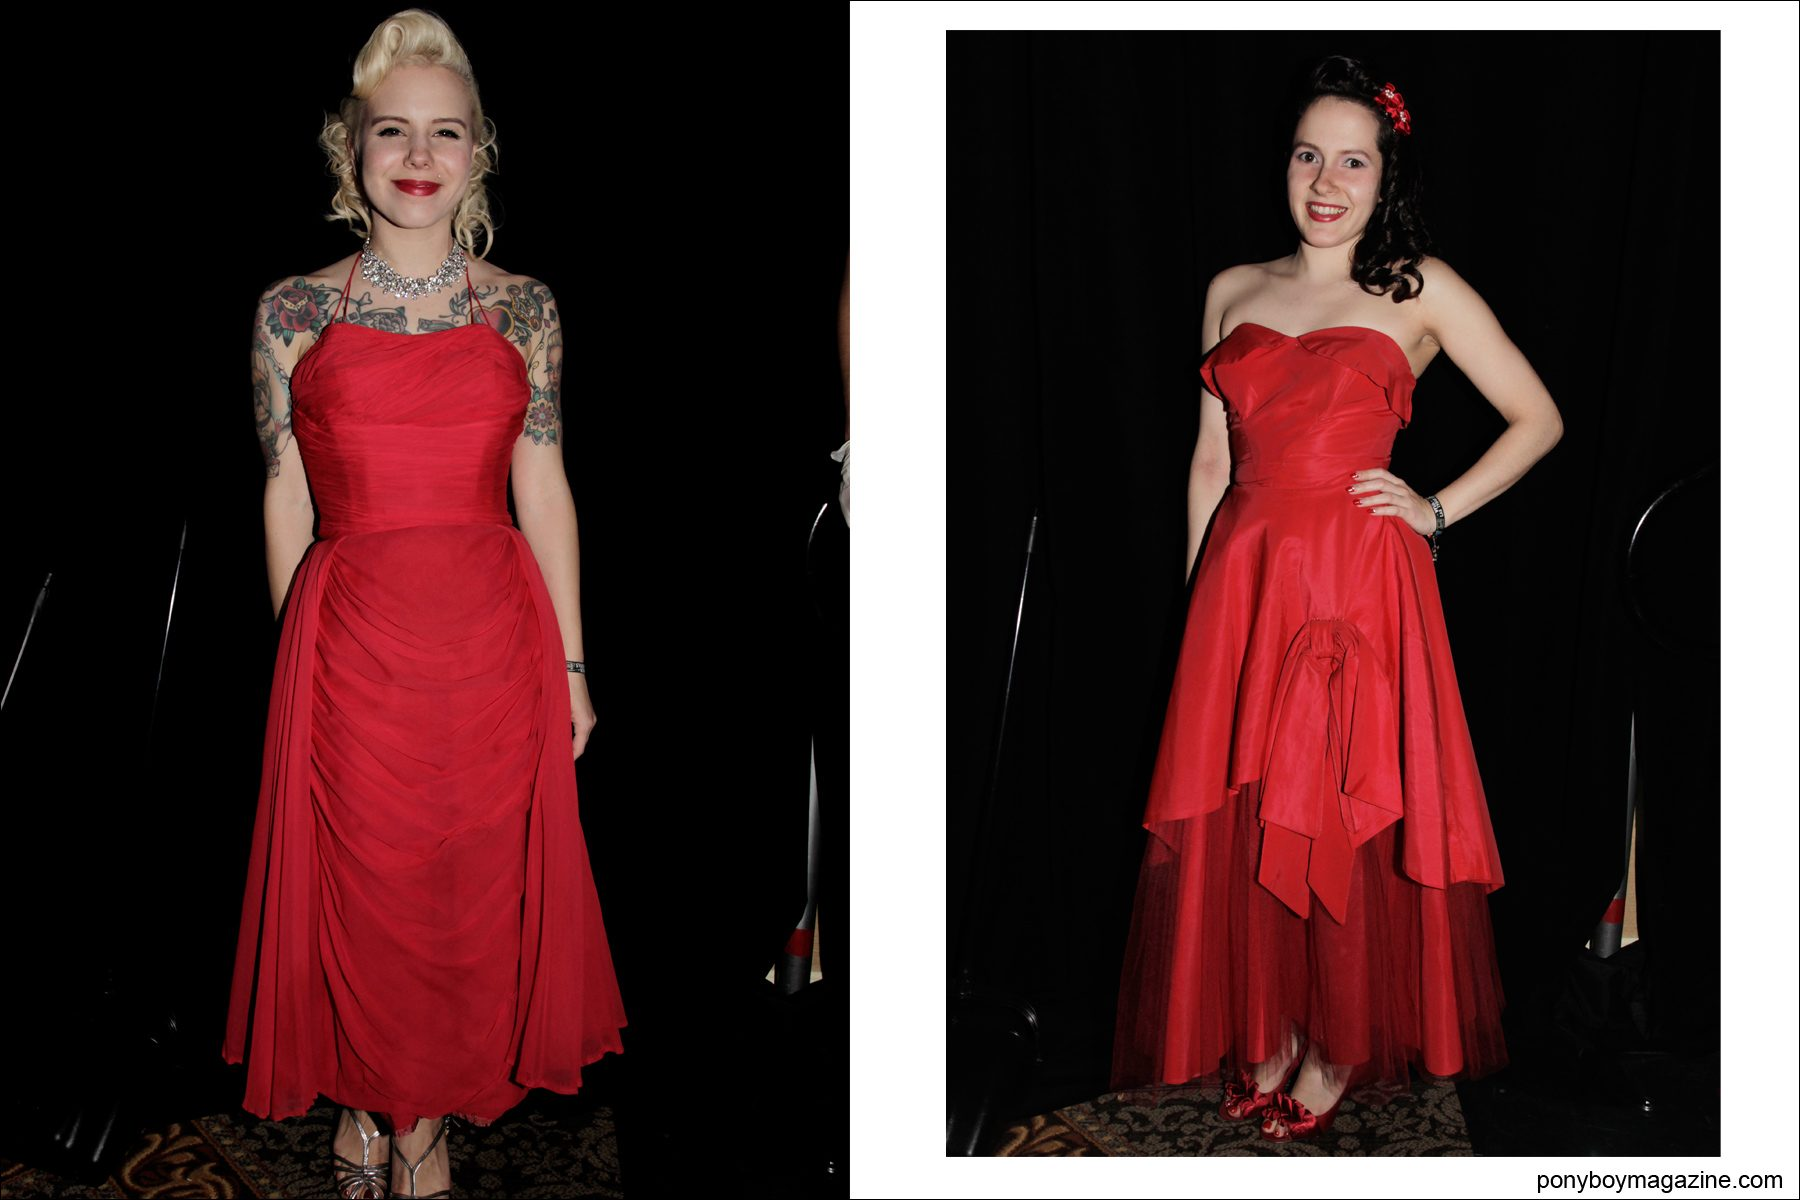 1950s Red Vintage Gowns Photographed On Young Women By Alexander Thompson For Ponyboy Magazine At Tom